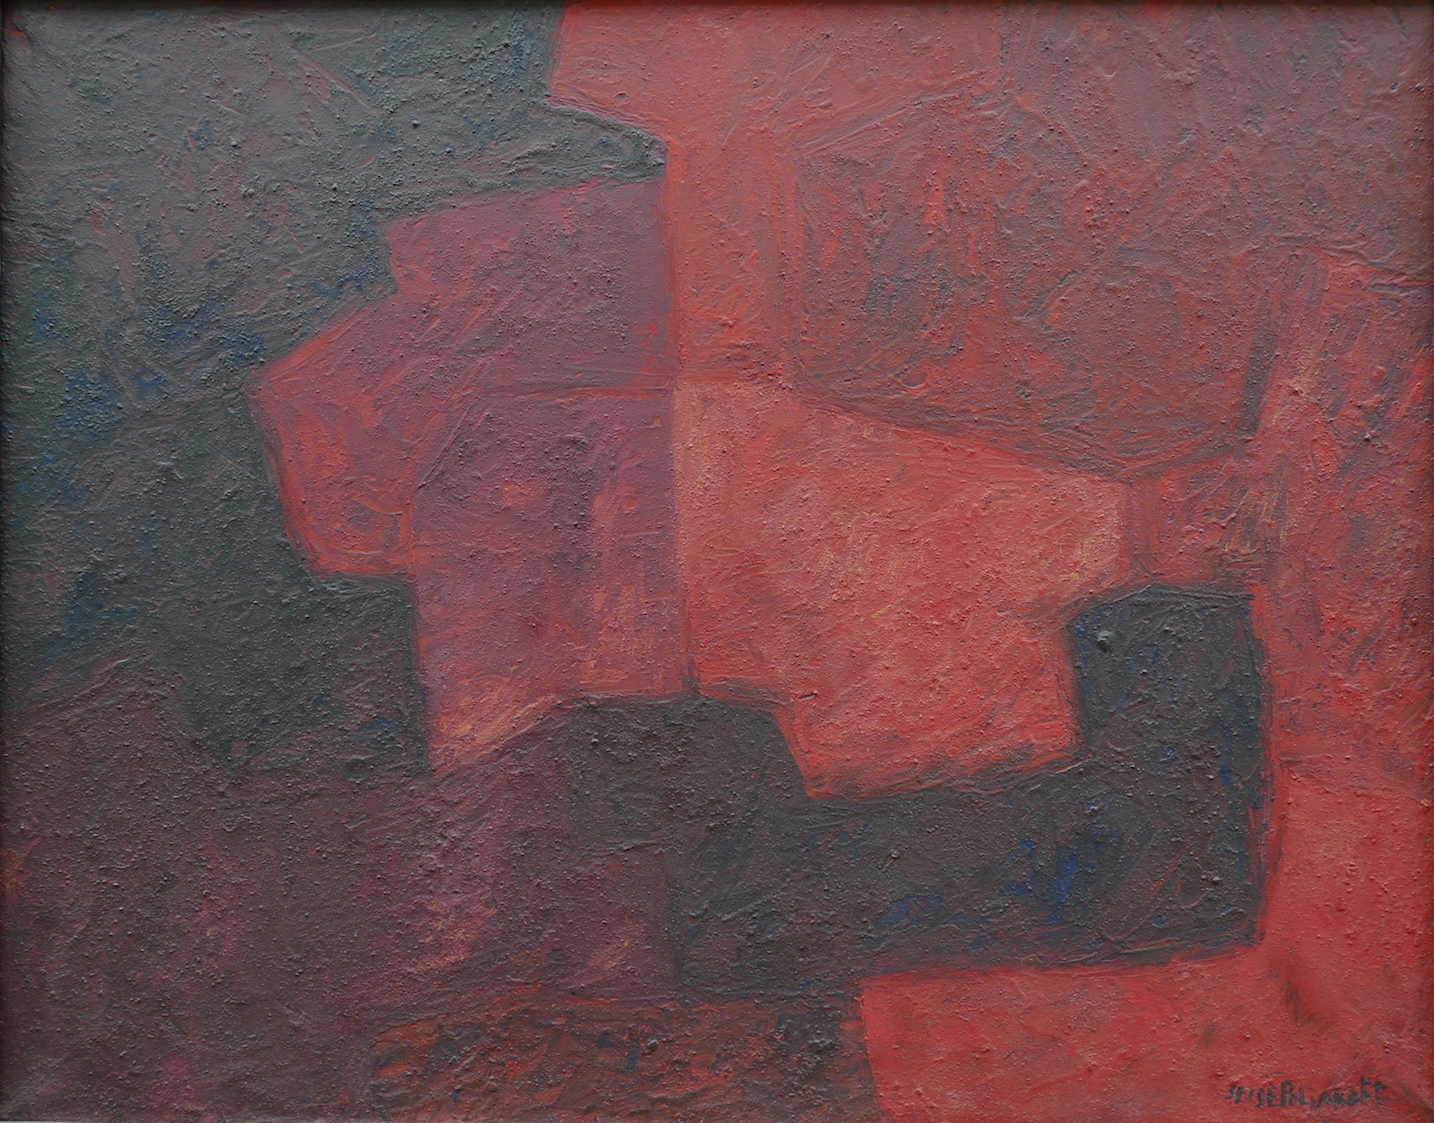 Serge Poliakoff - Composition abstraite, 1964